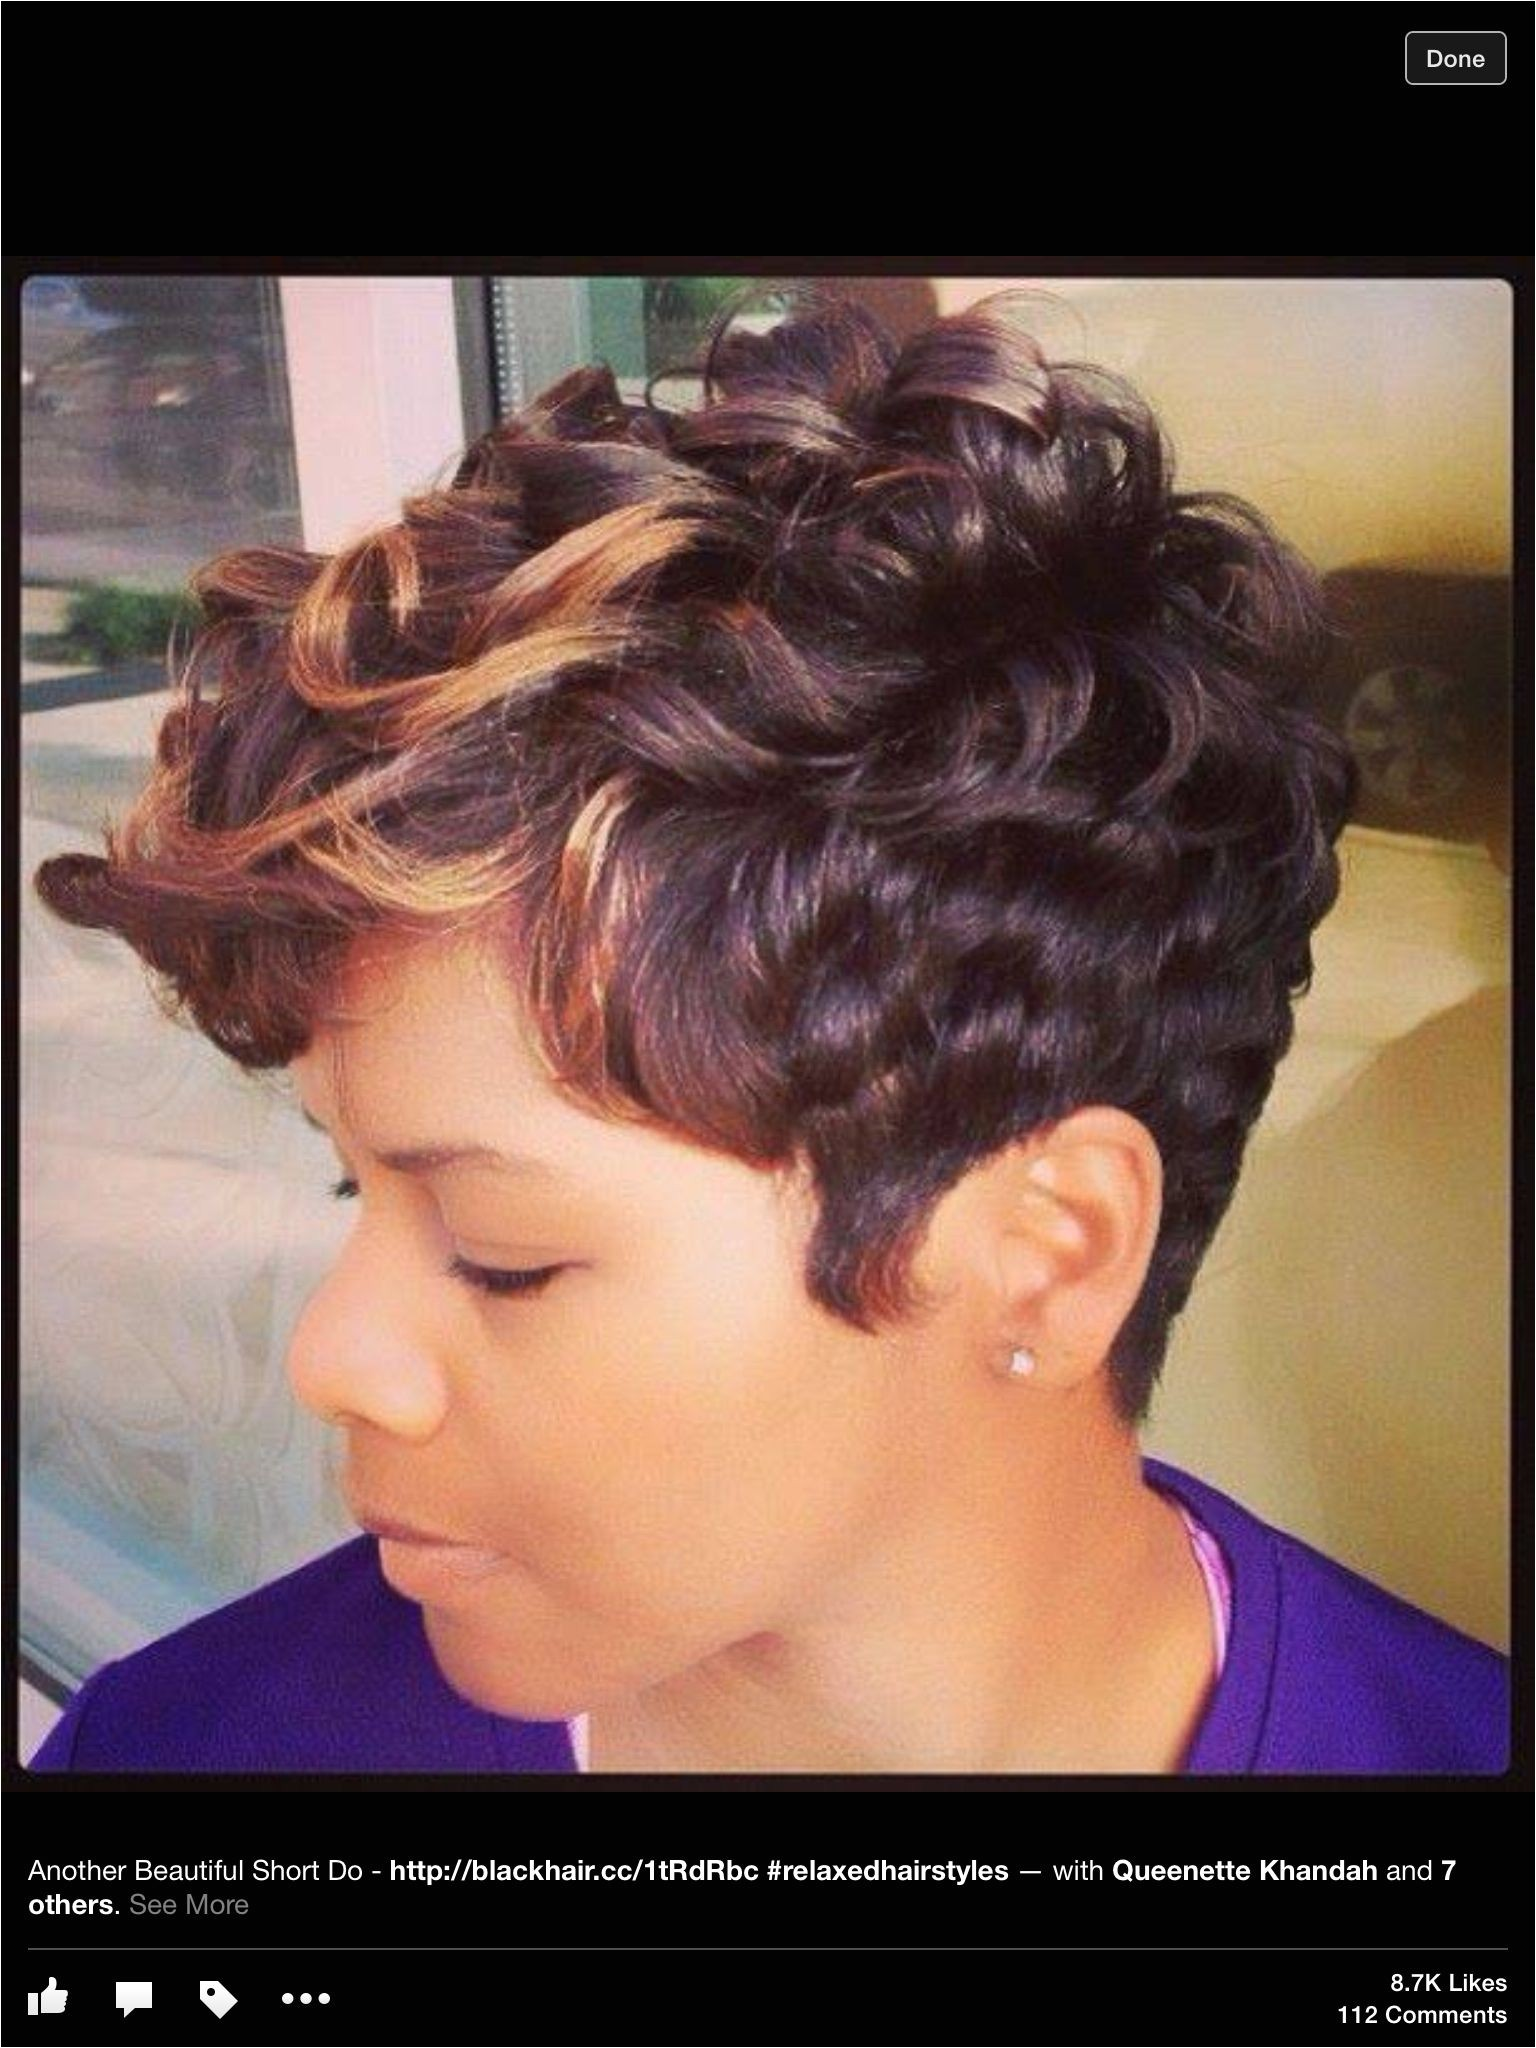 Cute Short Black Hairstyles Relaxed Hairstyles Amazing Hairstyles Short